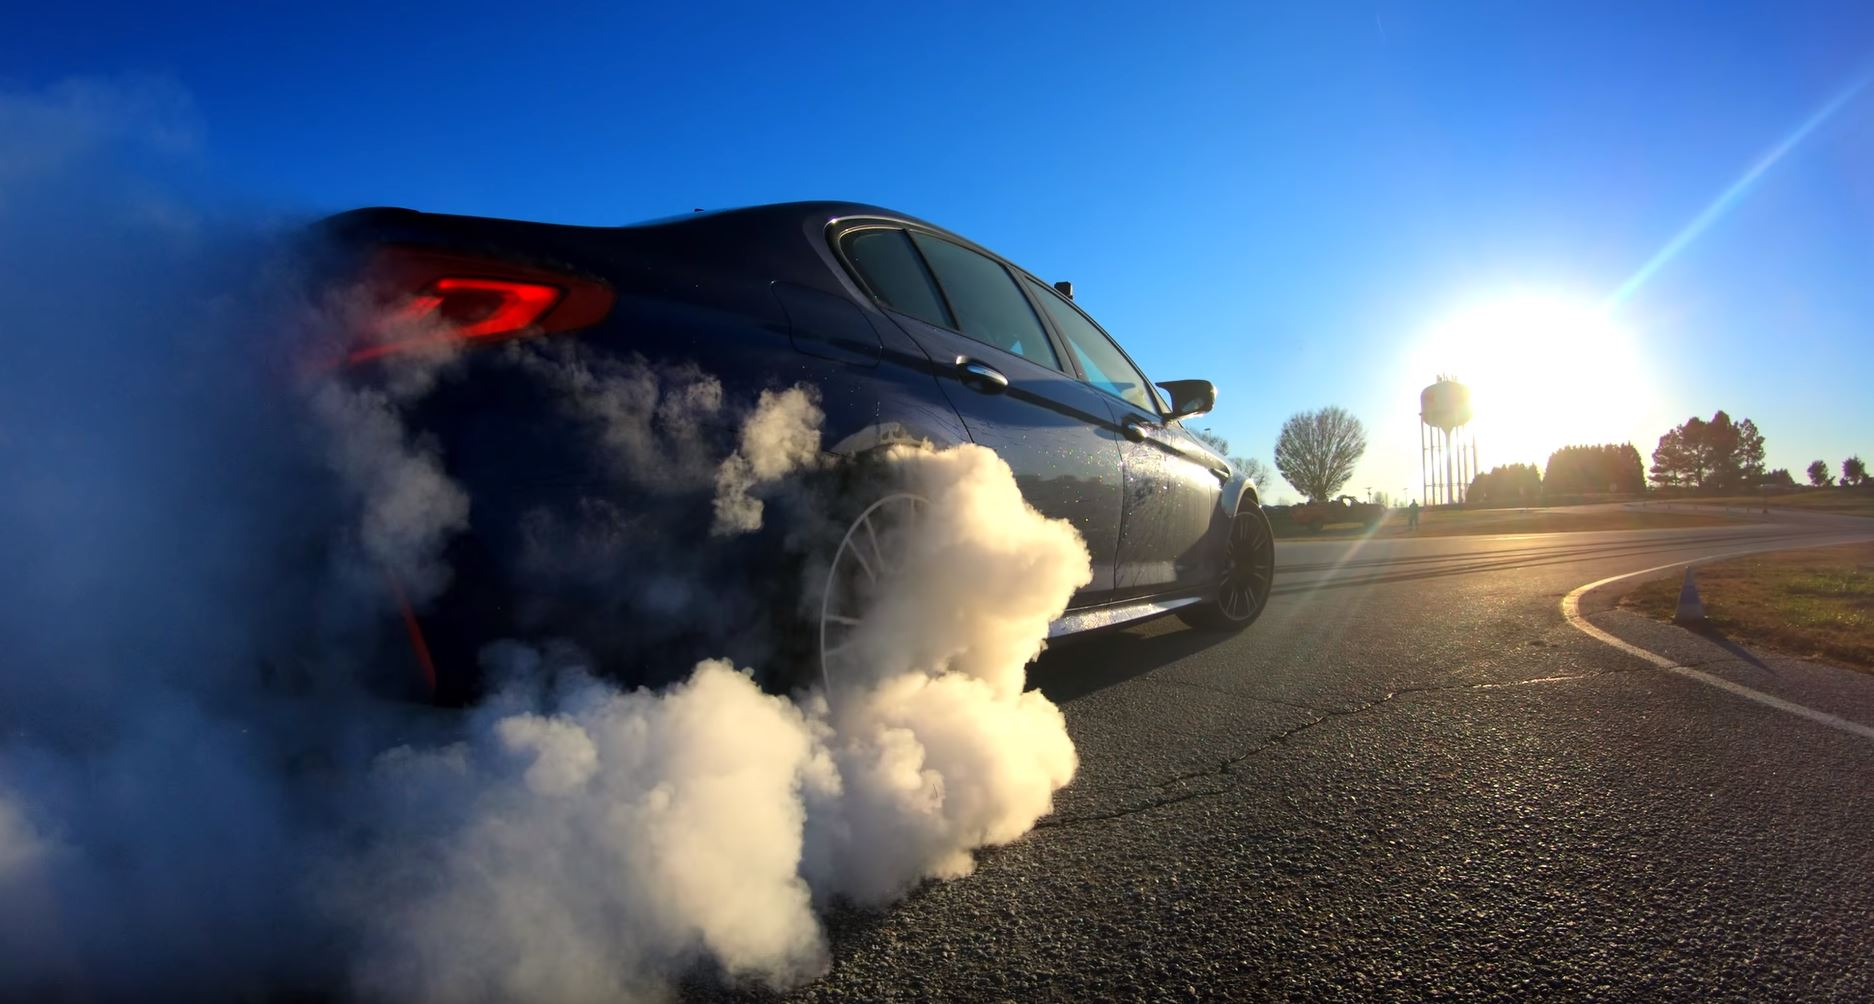 BMW M5 rear tire smokes while drifting